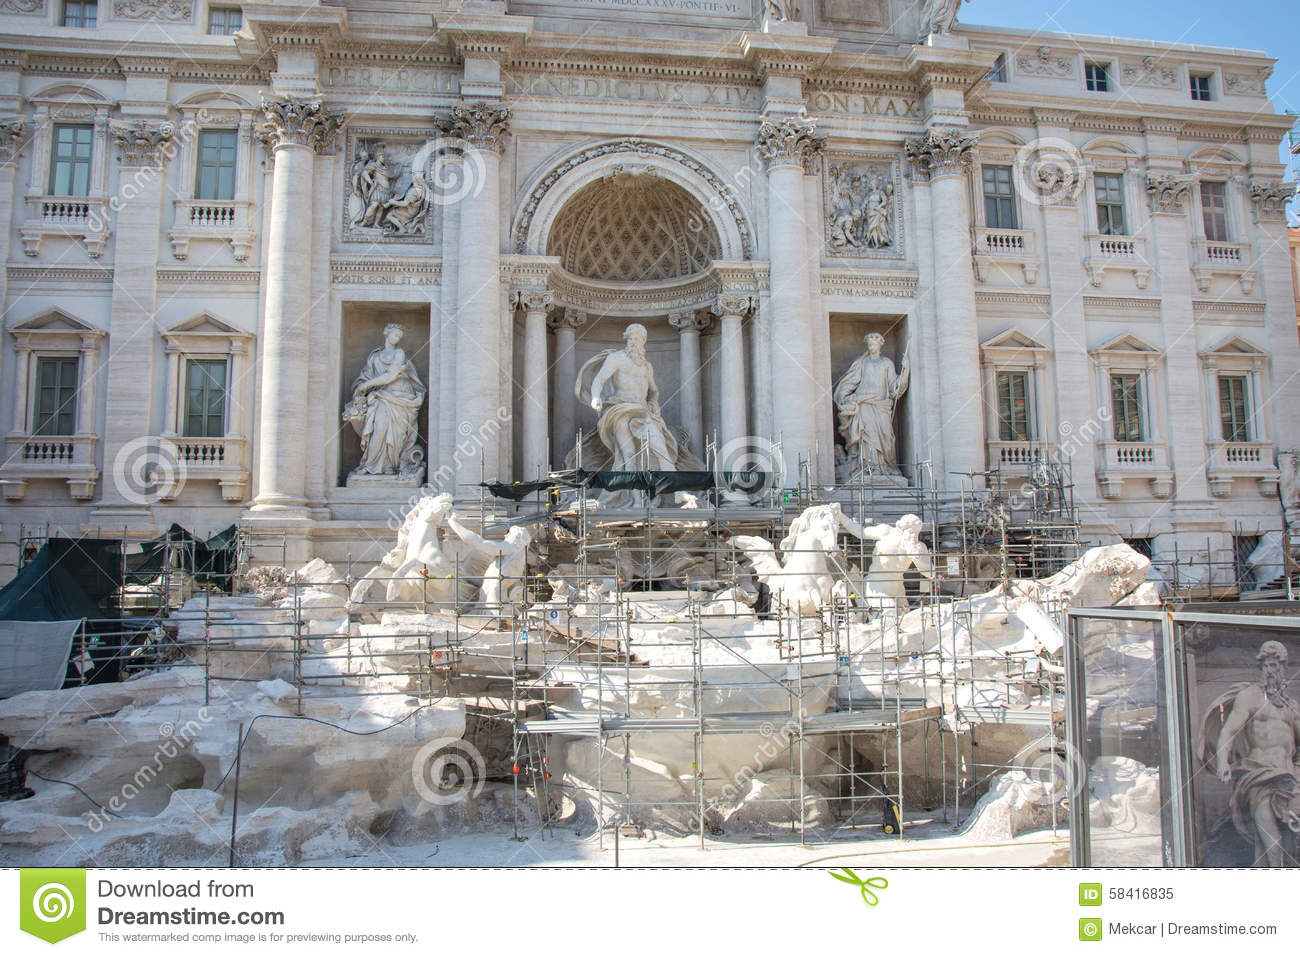 68790e8330d9 Restoration Of The Trevi Fountain Rome In Summer 2015 Stock Image ...